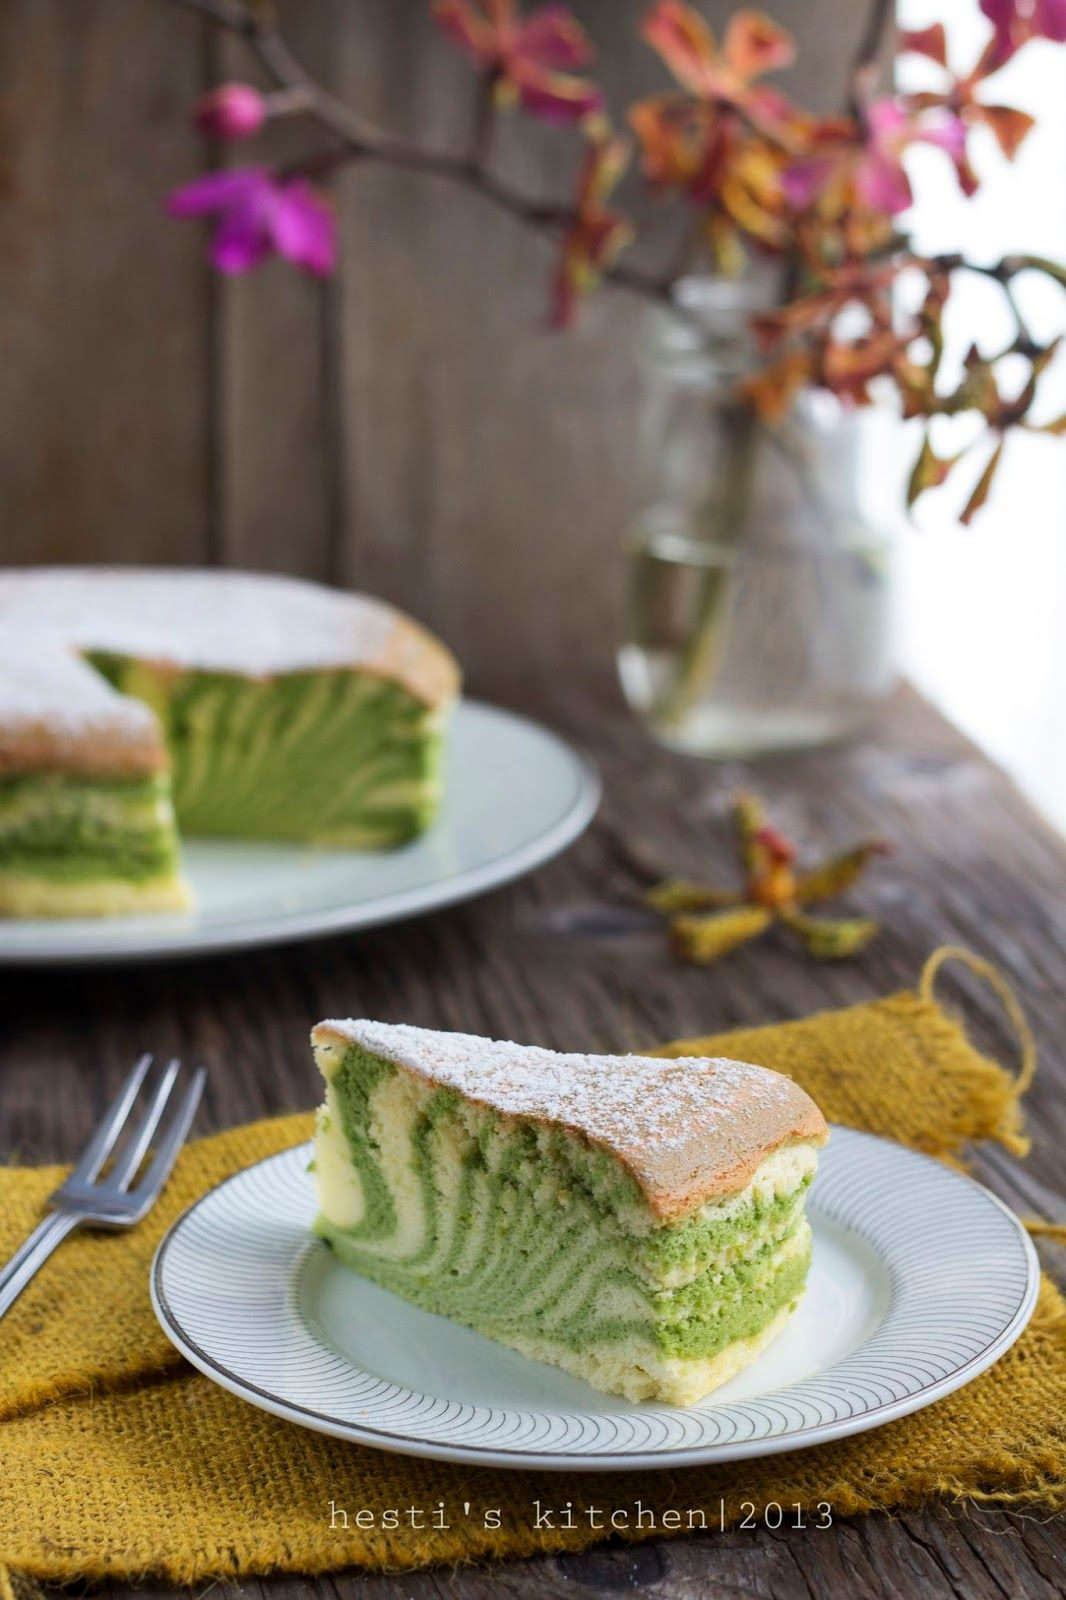 Hesti S Kitchen Yummy For Your Tummy Green Tea Japanese Cheese Cake Resep Kue Keju Resep Kue Makanan